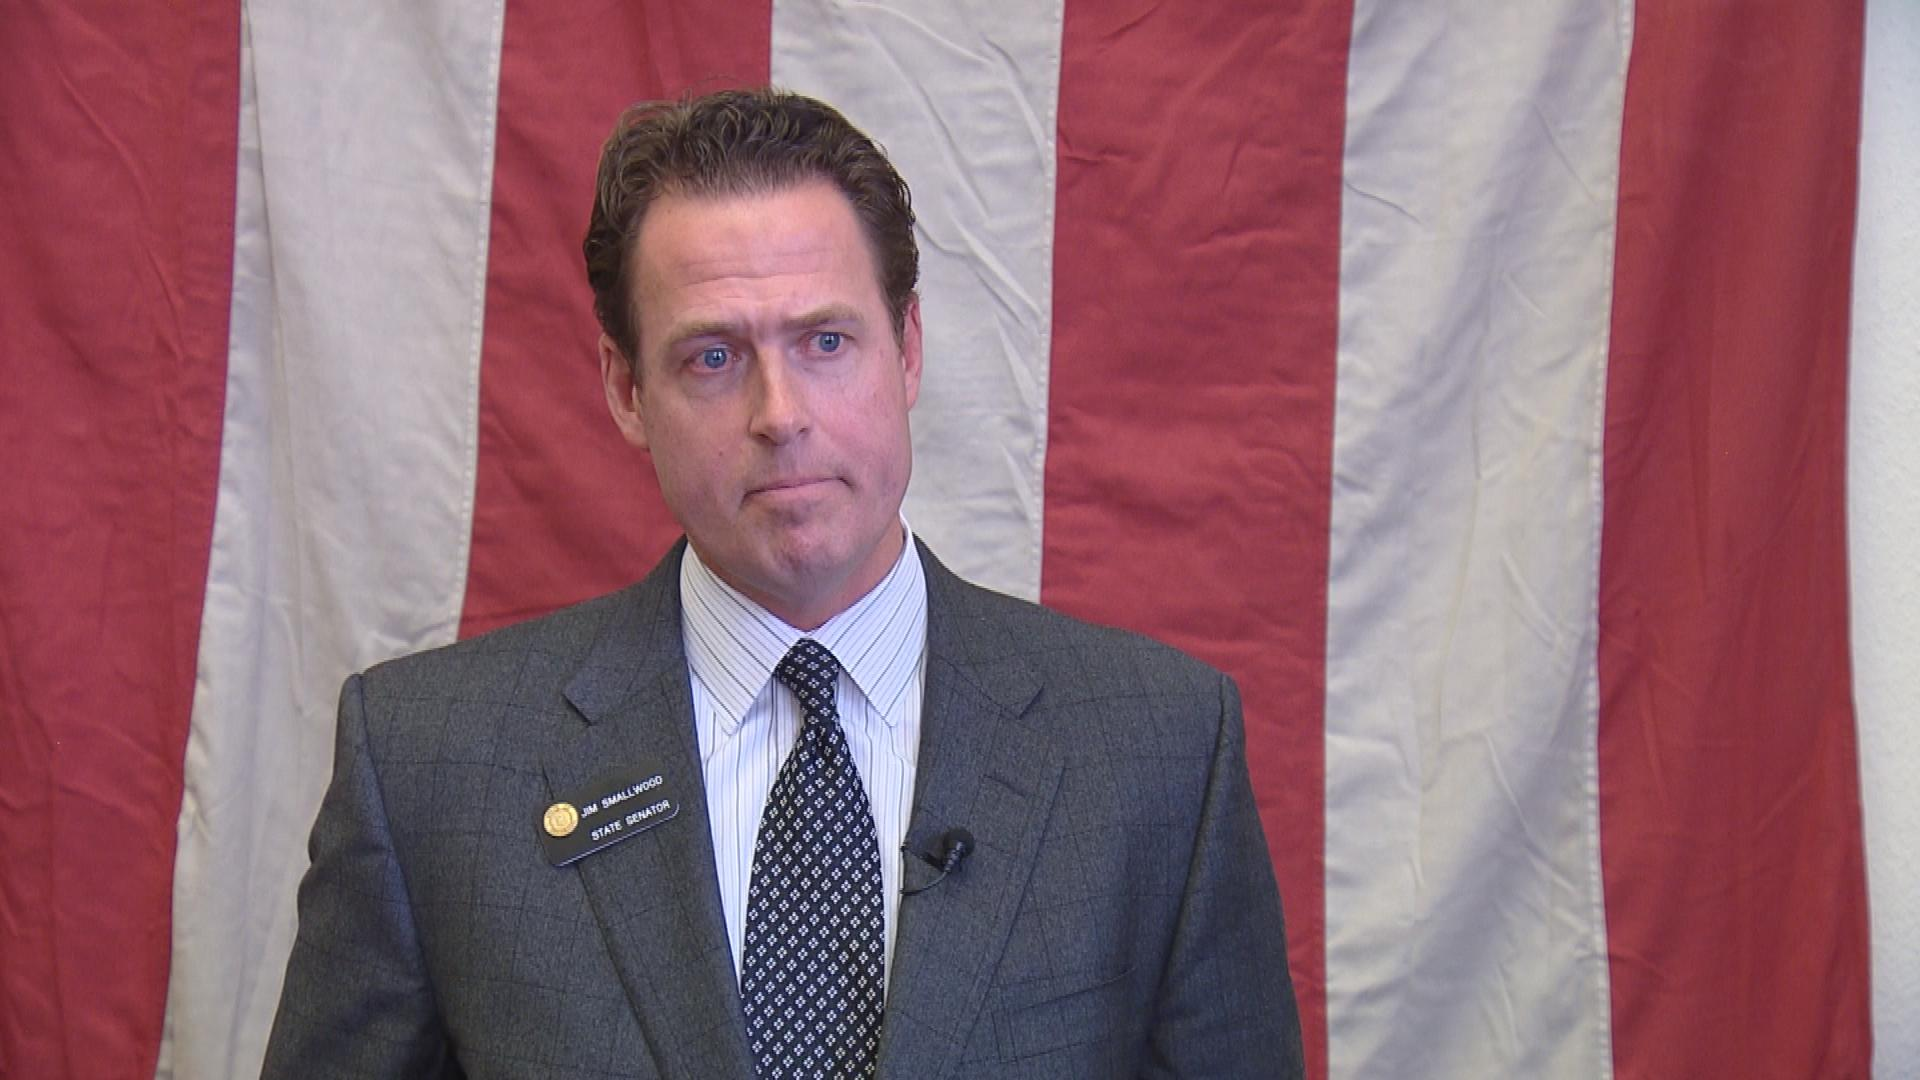 Sen. Jim Smallwood, R-Douglas County (credit: CBS)